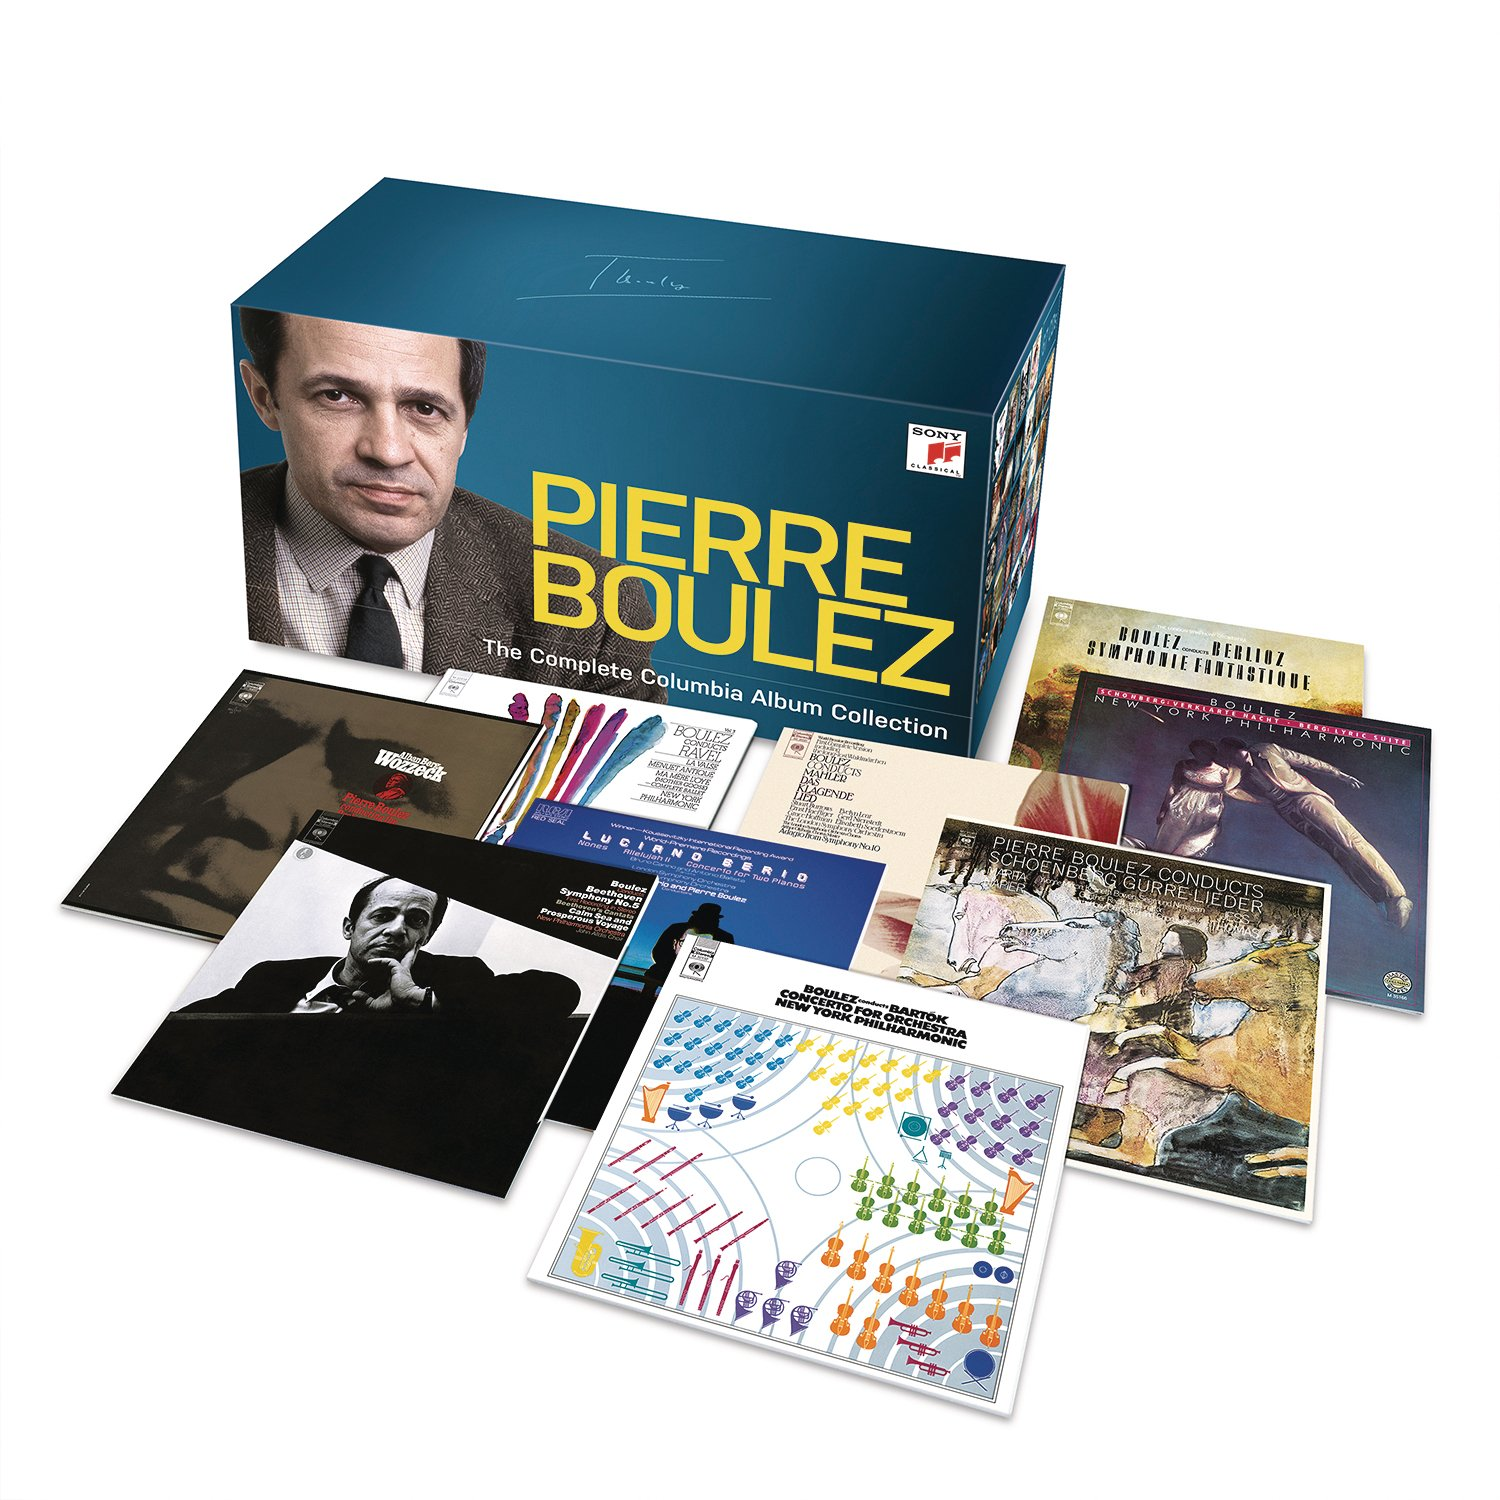 Pierre Boulez - The Complete Columbia Album Collection by CD